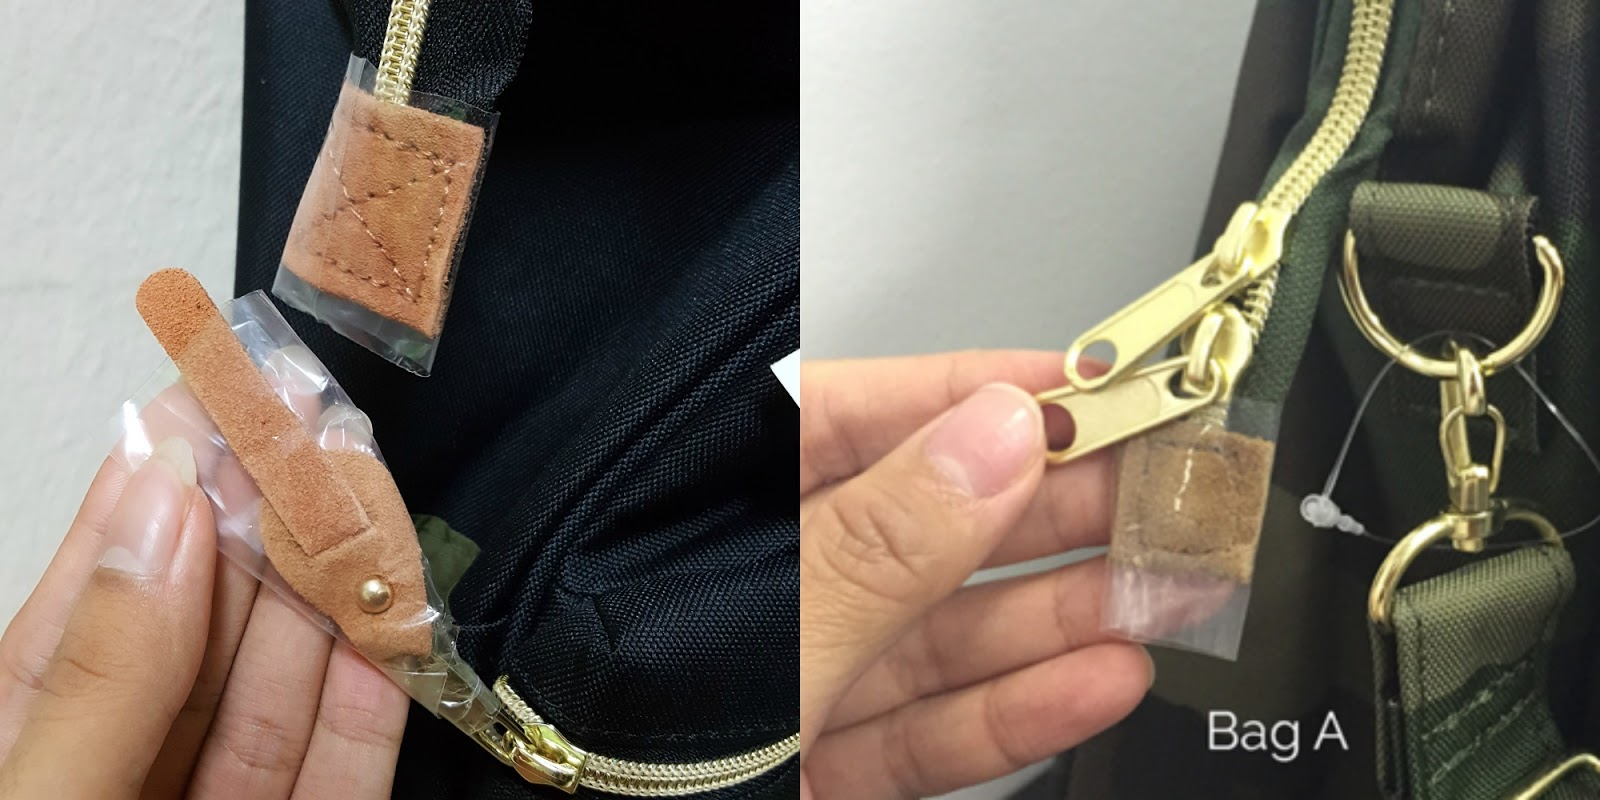 37a6713cd9 The zippers should be gold and not rose gold, and mine were gold: